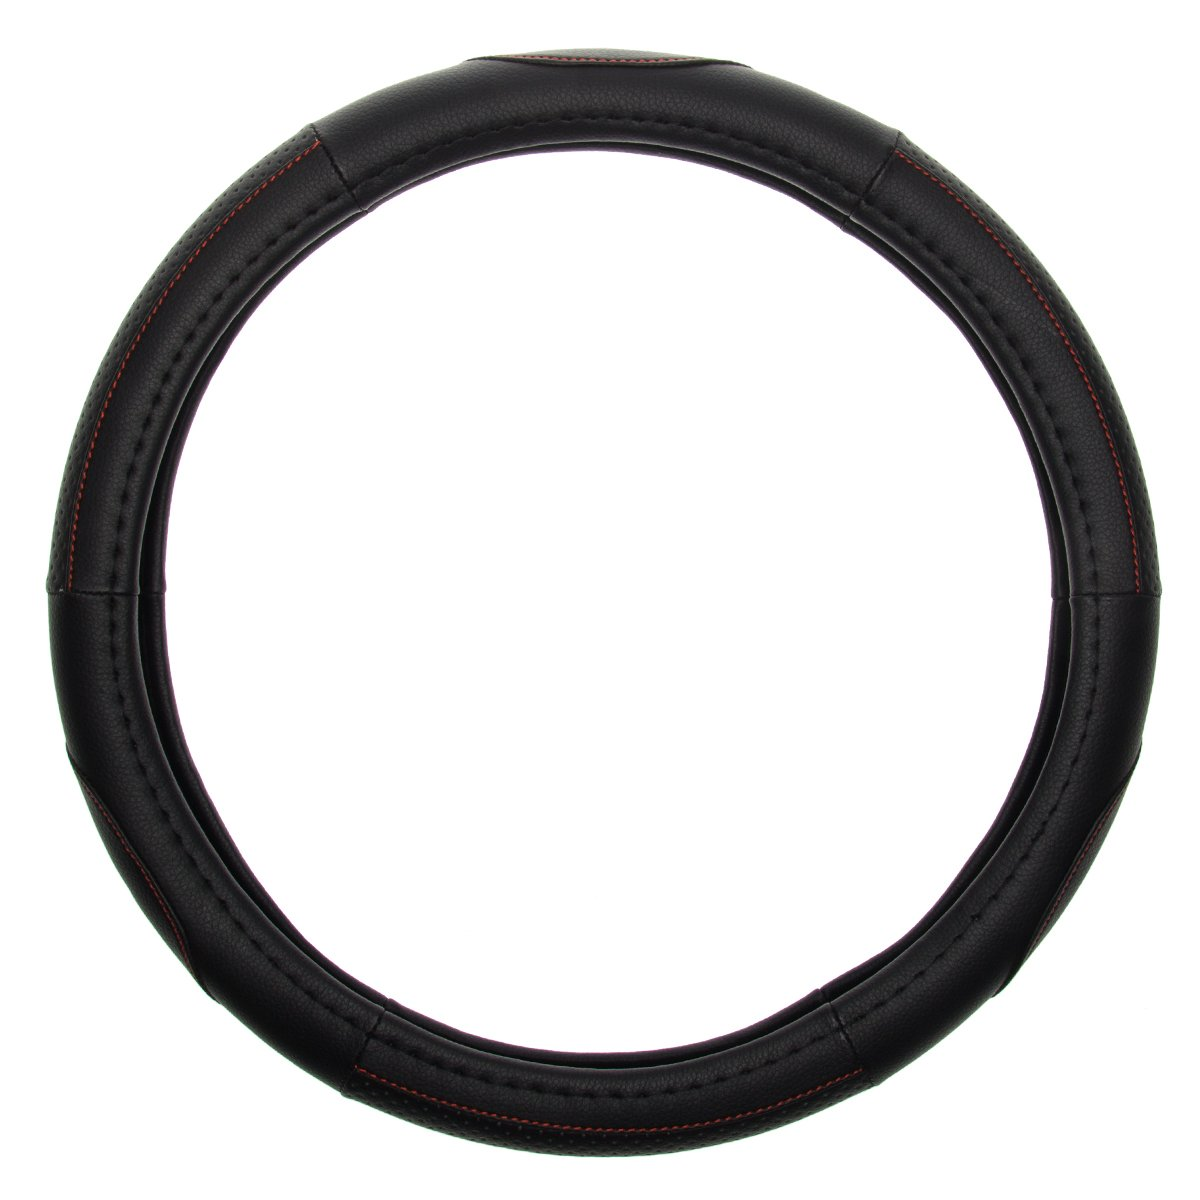 Power XT Faux Leather Steering Wheel Cover Easy Contour Grip Fits Cars Truck DIY Black Red Universal Fitted 15 Inch Auto